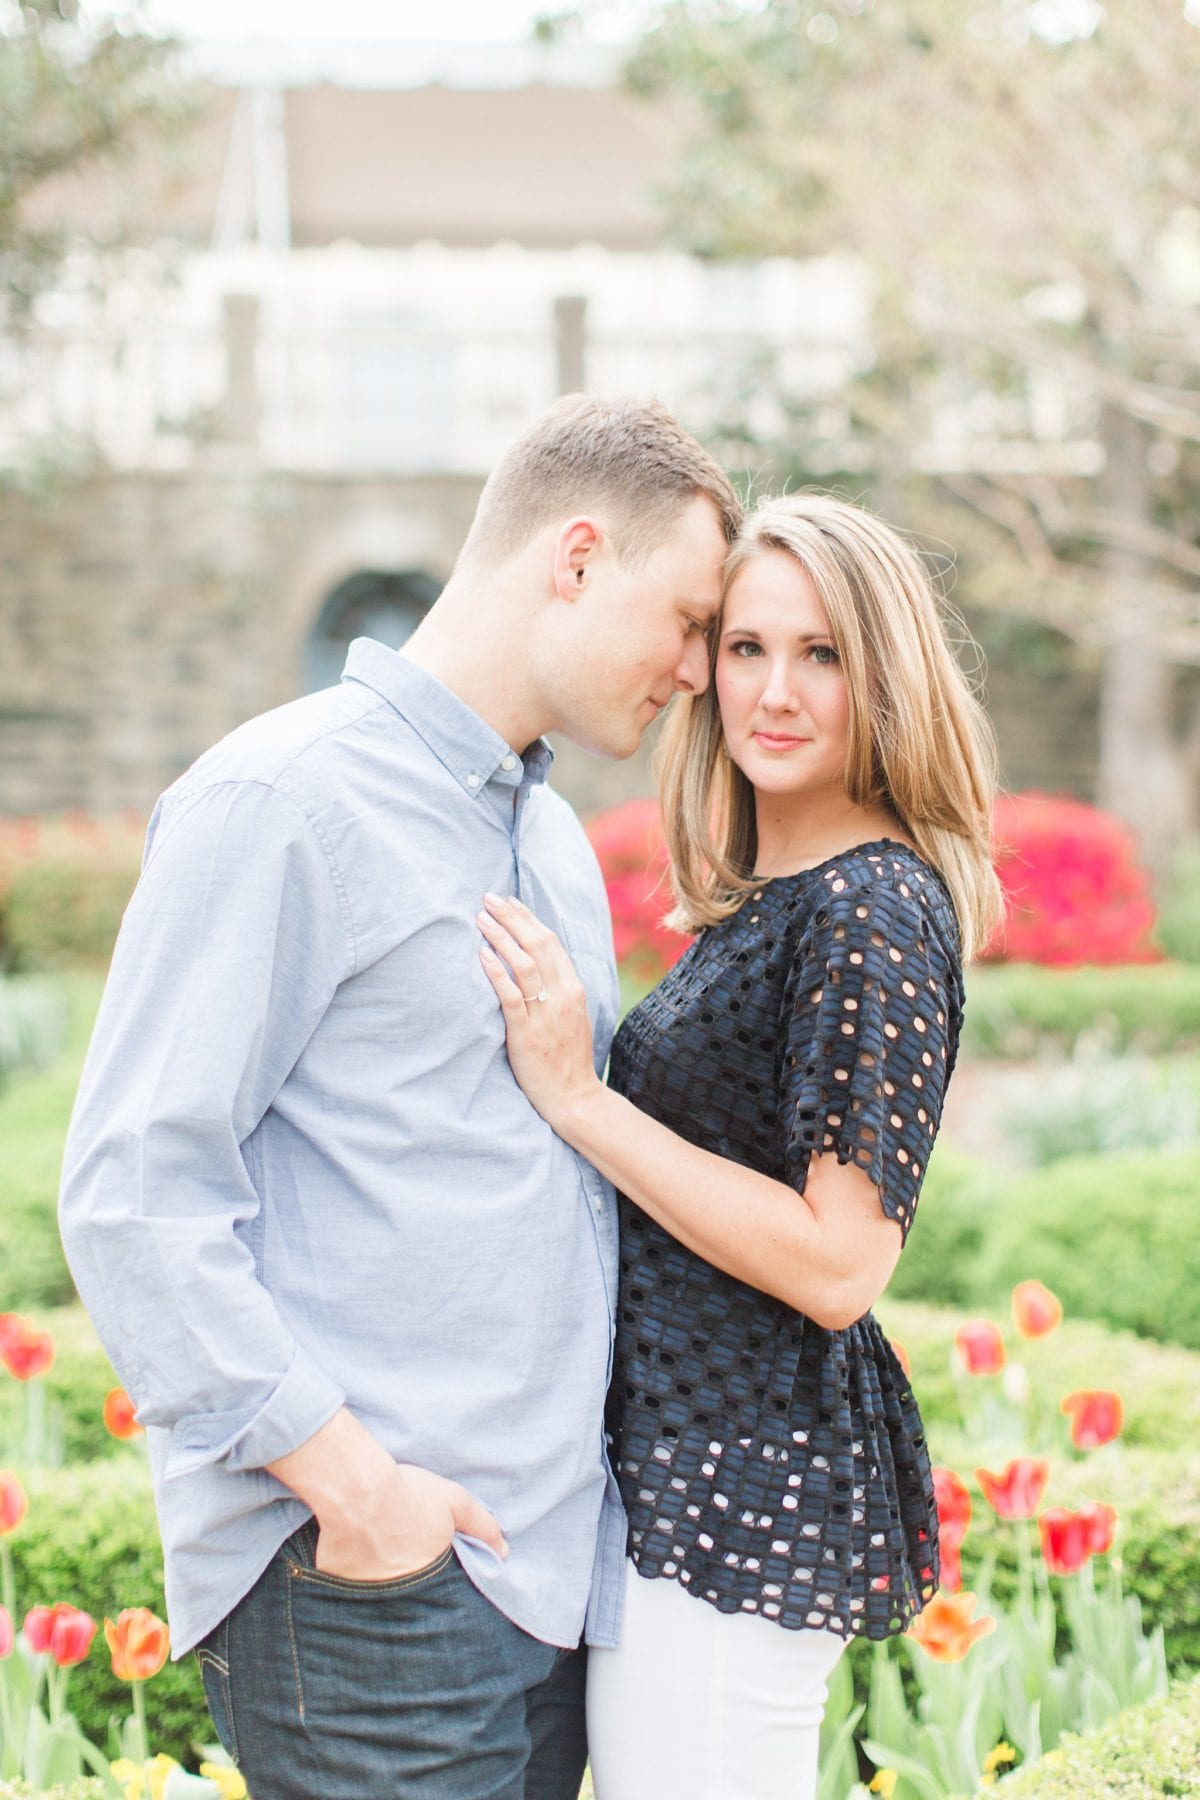 Springtime Old Town Alexandria Engagement Session Matt & Maxie Megan Kelsey Photography-259.jpg